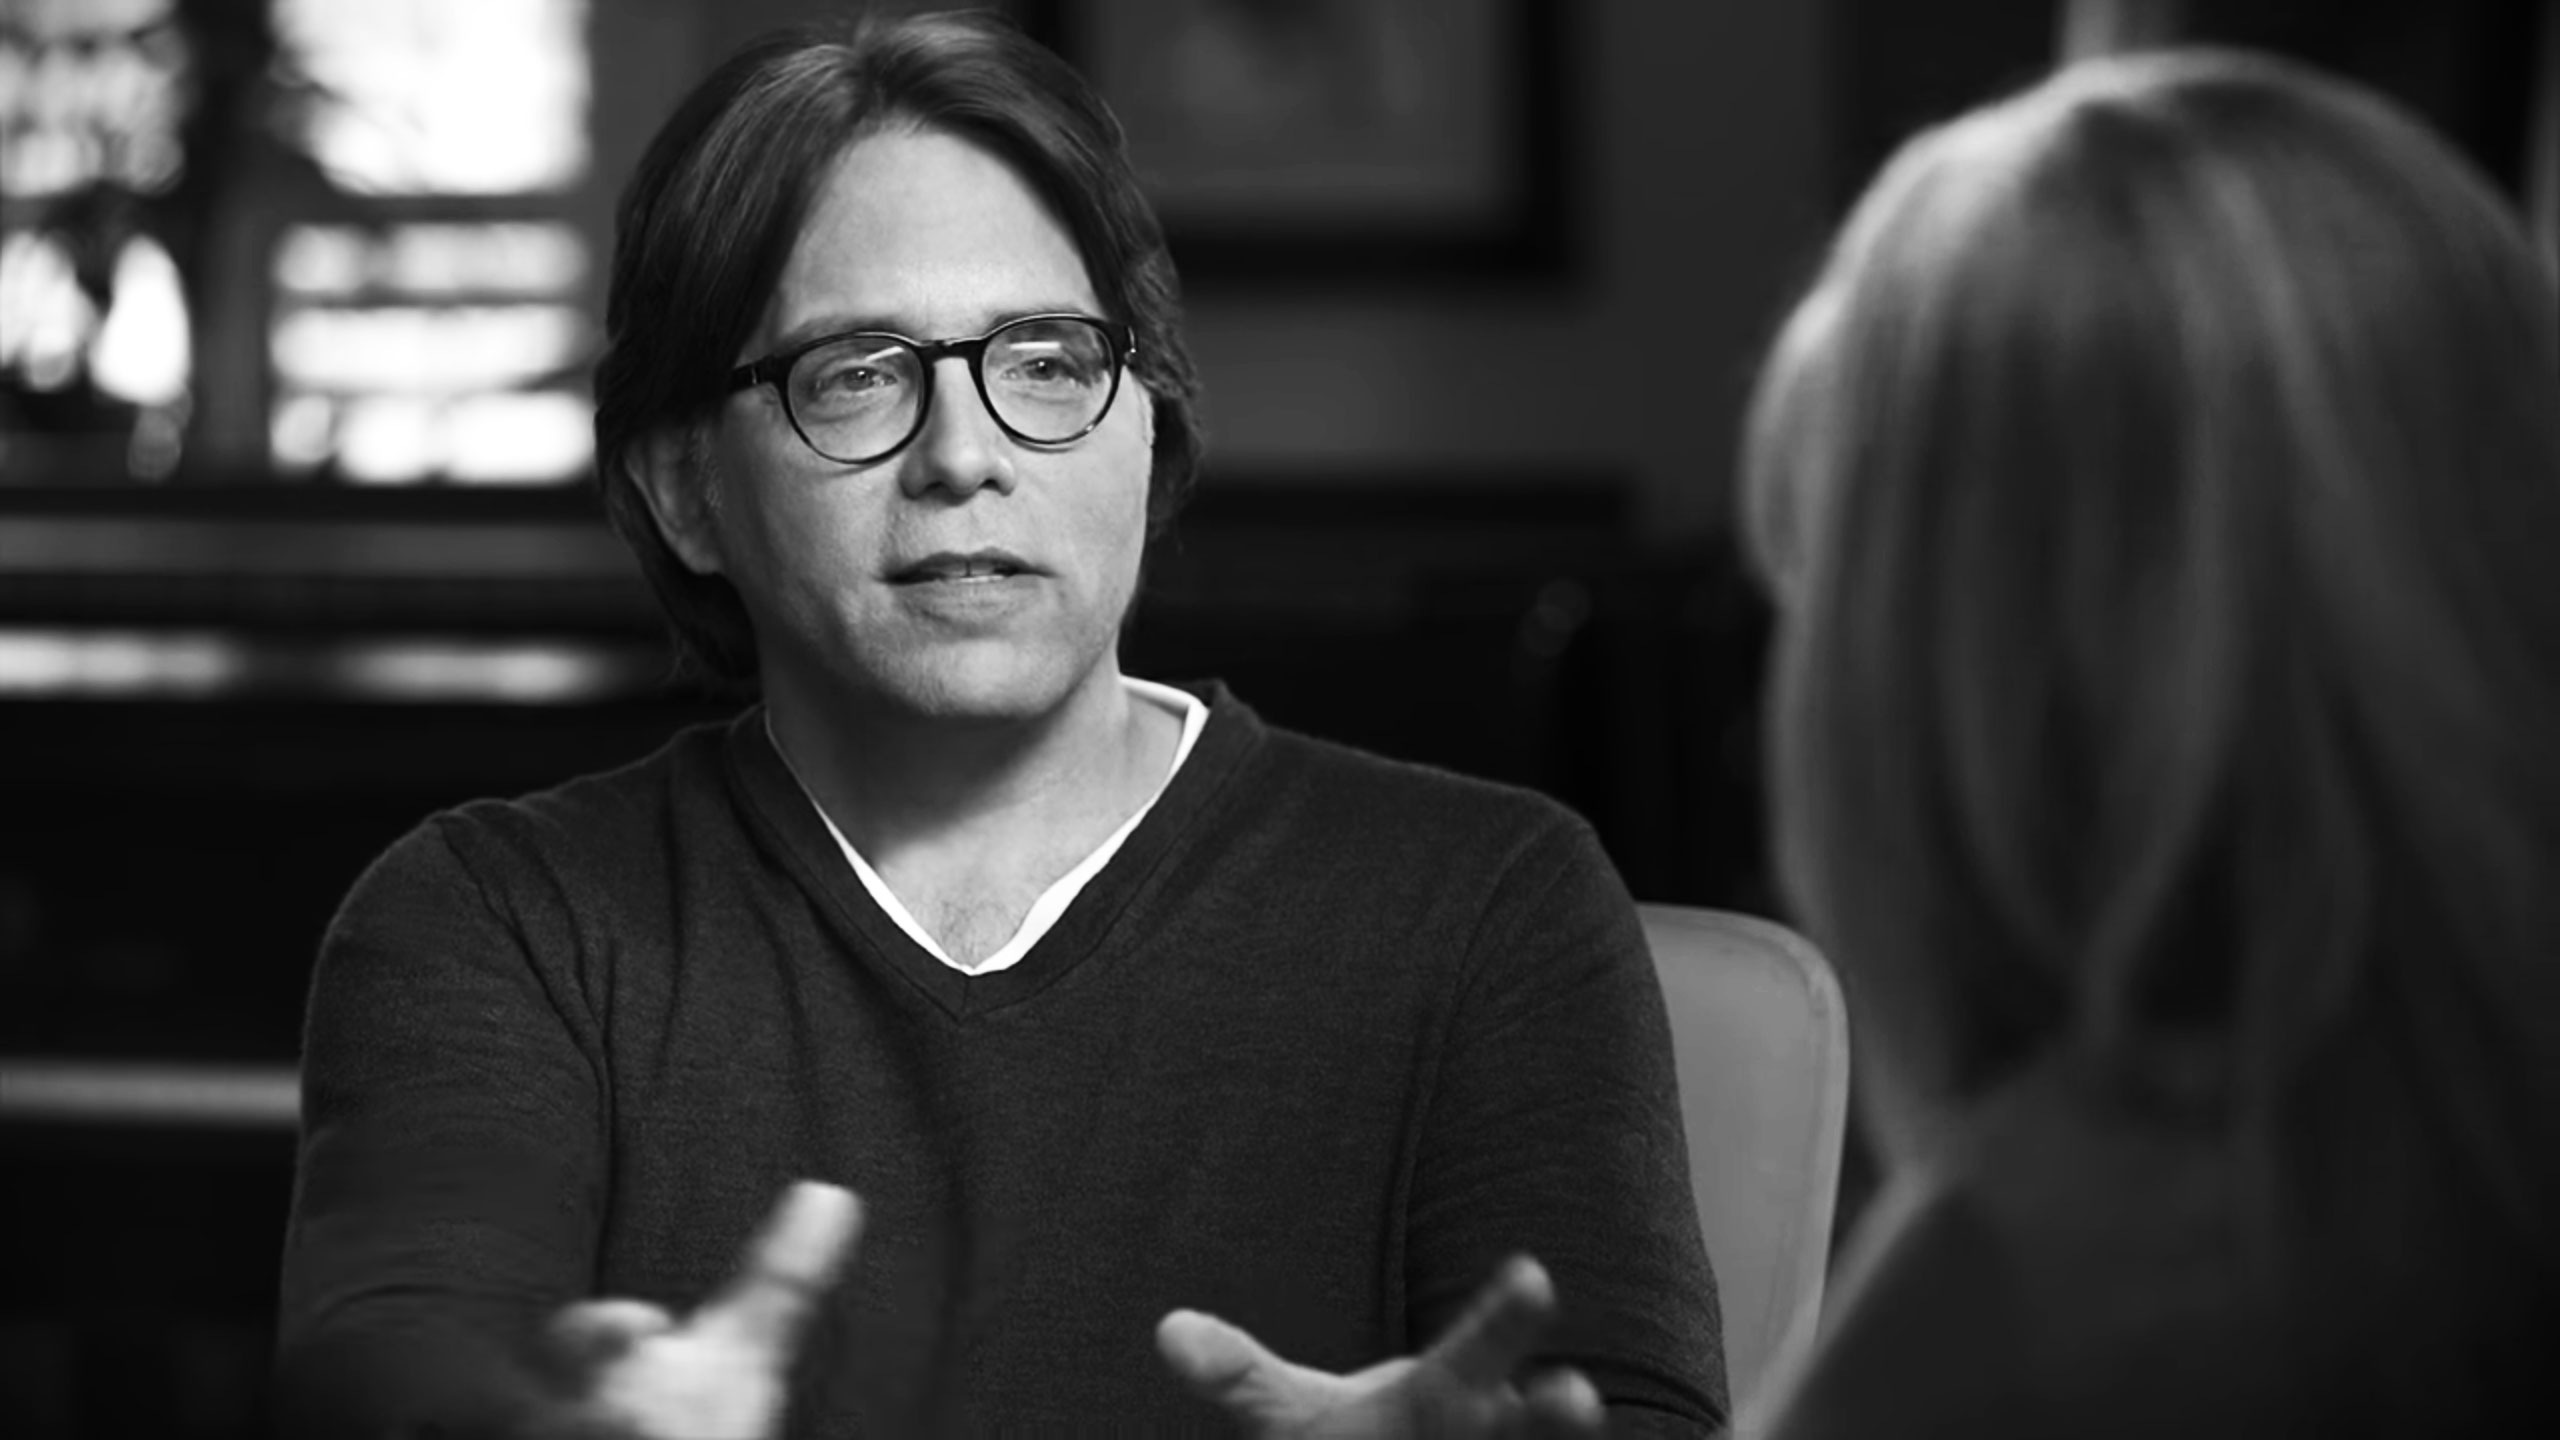 Leader of Alleged Sex Cult NXIVM Hit With Child Porn Charges